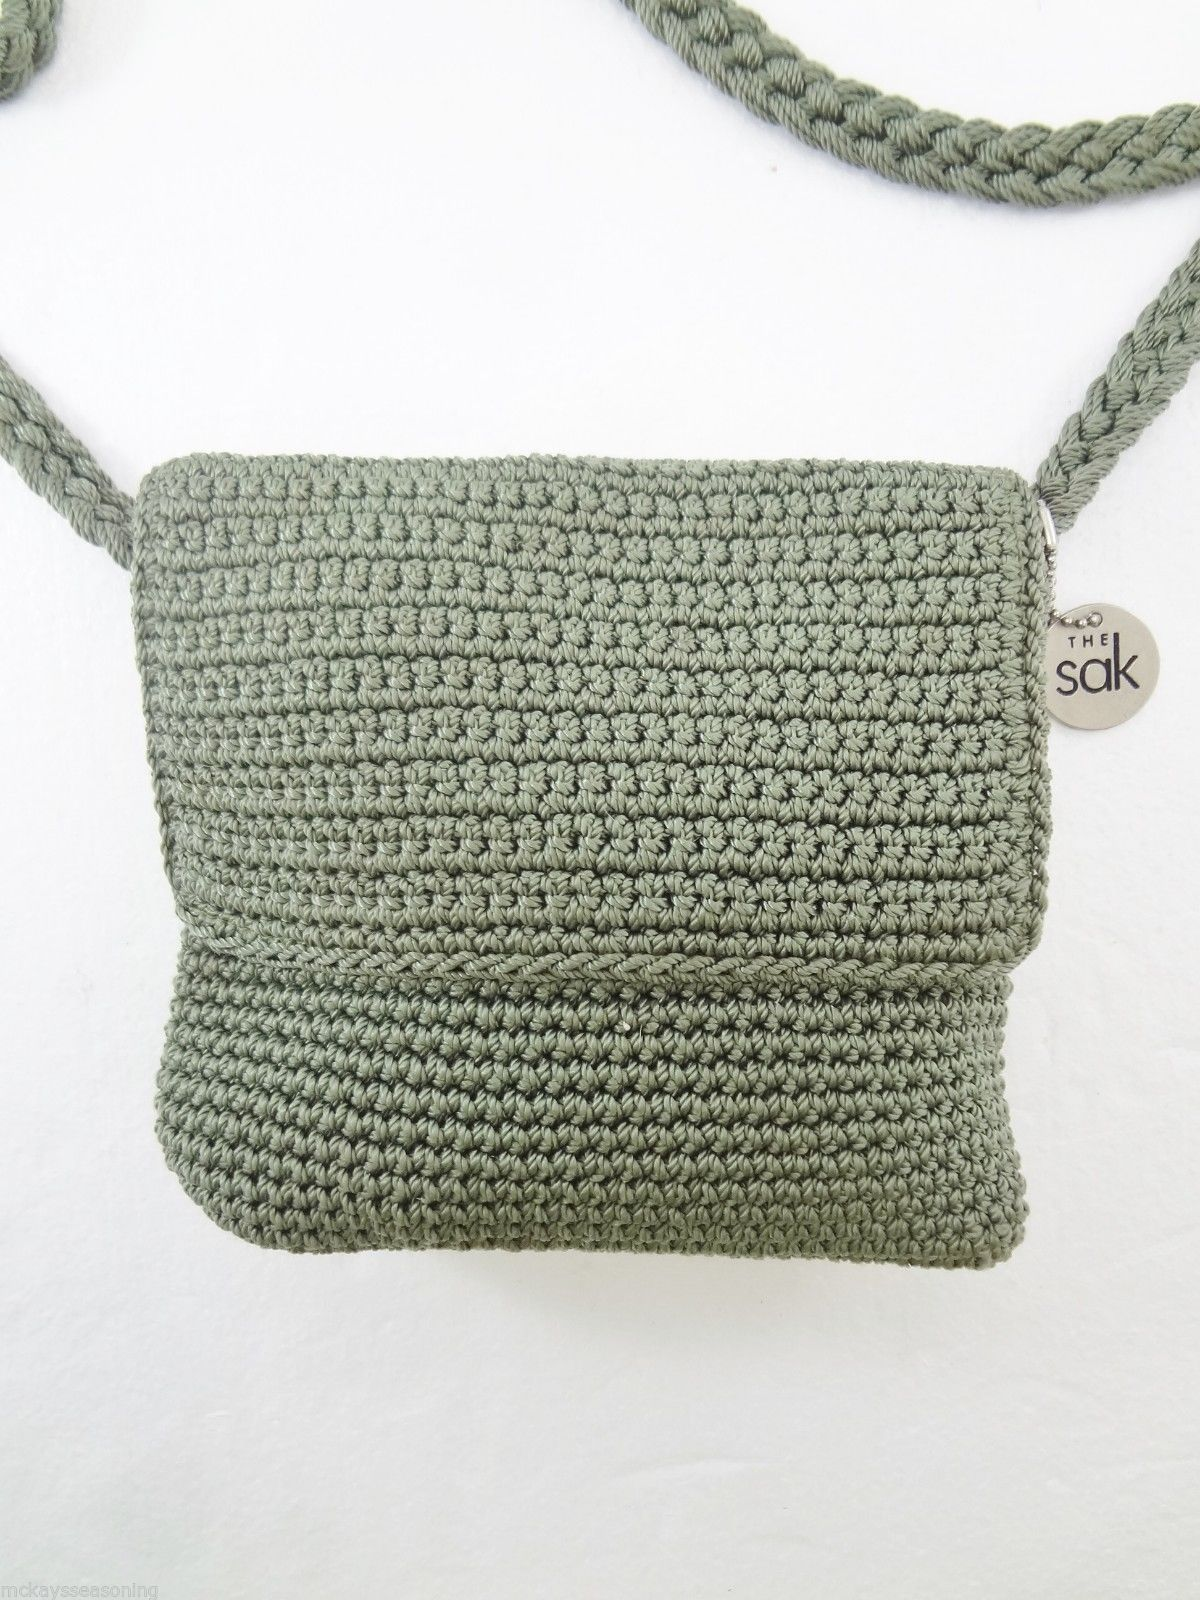 The Sak Sage Green Crochet Small Cross-Body Shoulder Bag Handbag Purse ...